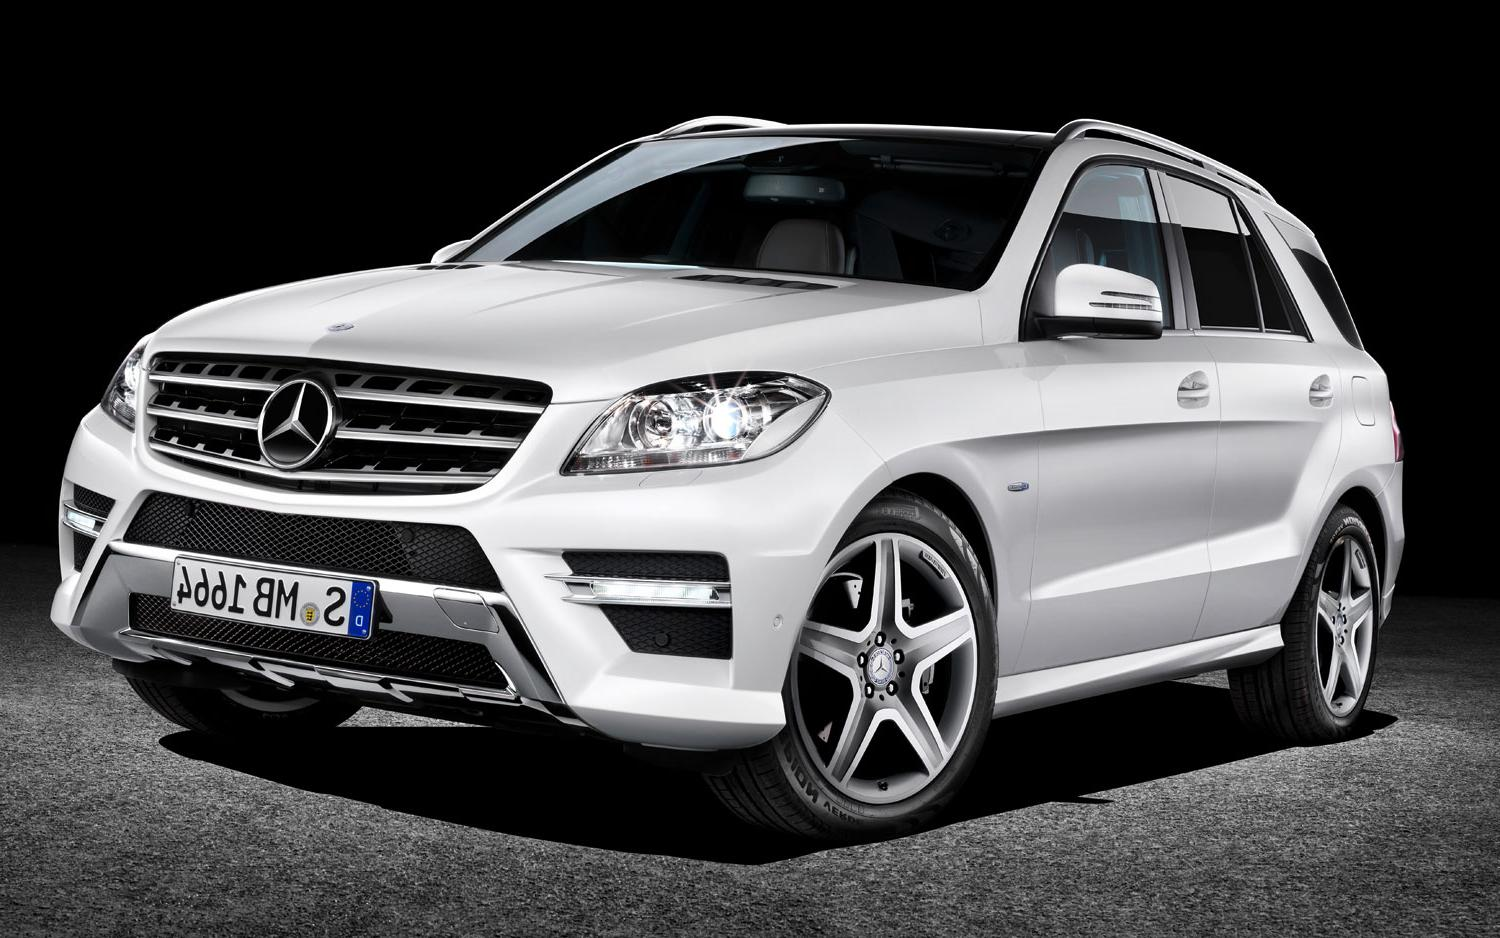 Mercedes takes on BMW X6,